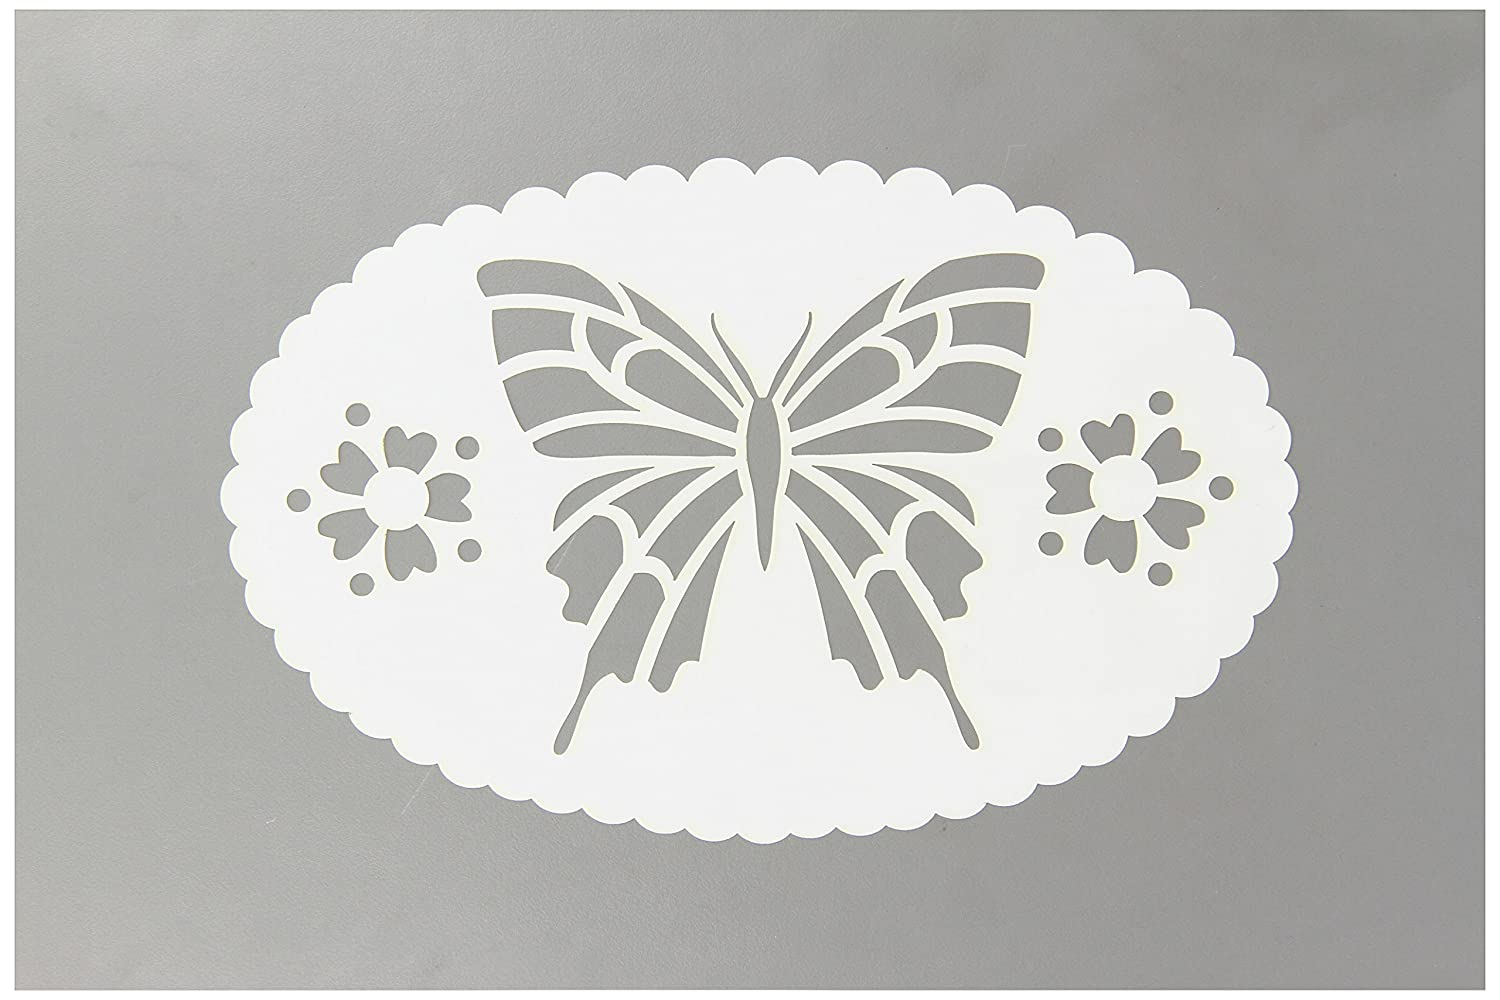 Amazon.com: FolkArt Large Painting Stencil, 30595 Butterfly Frame